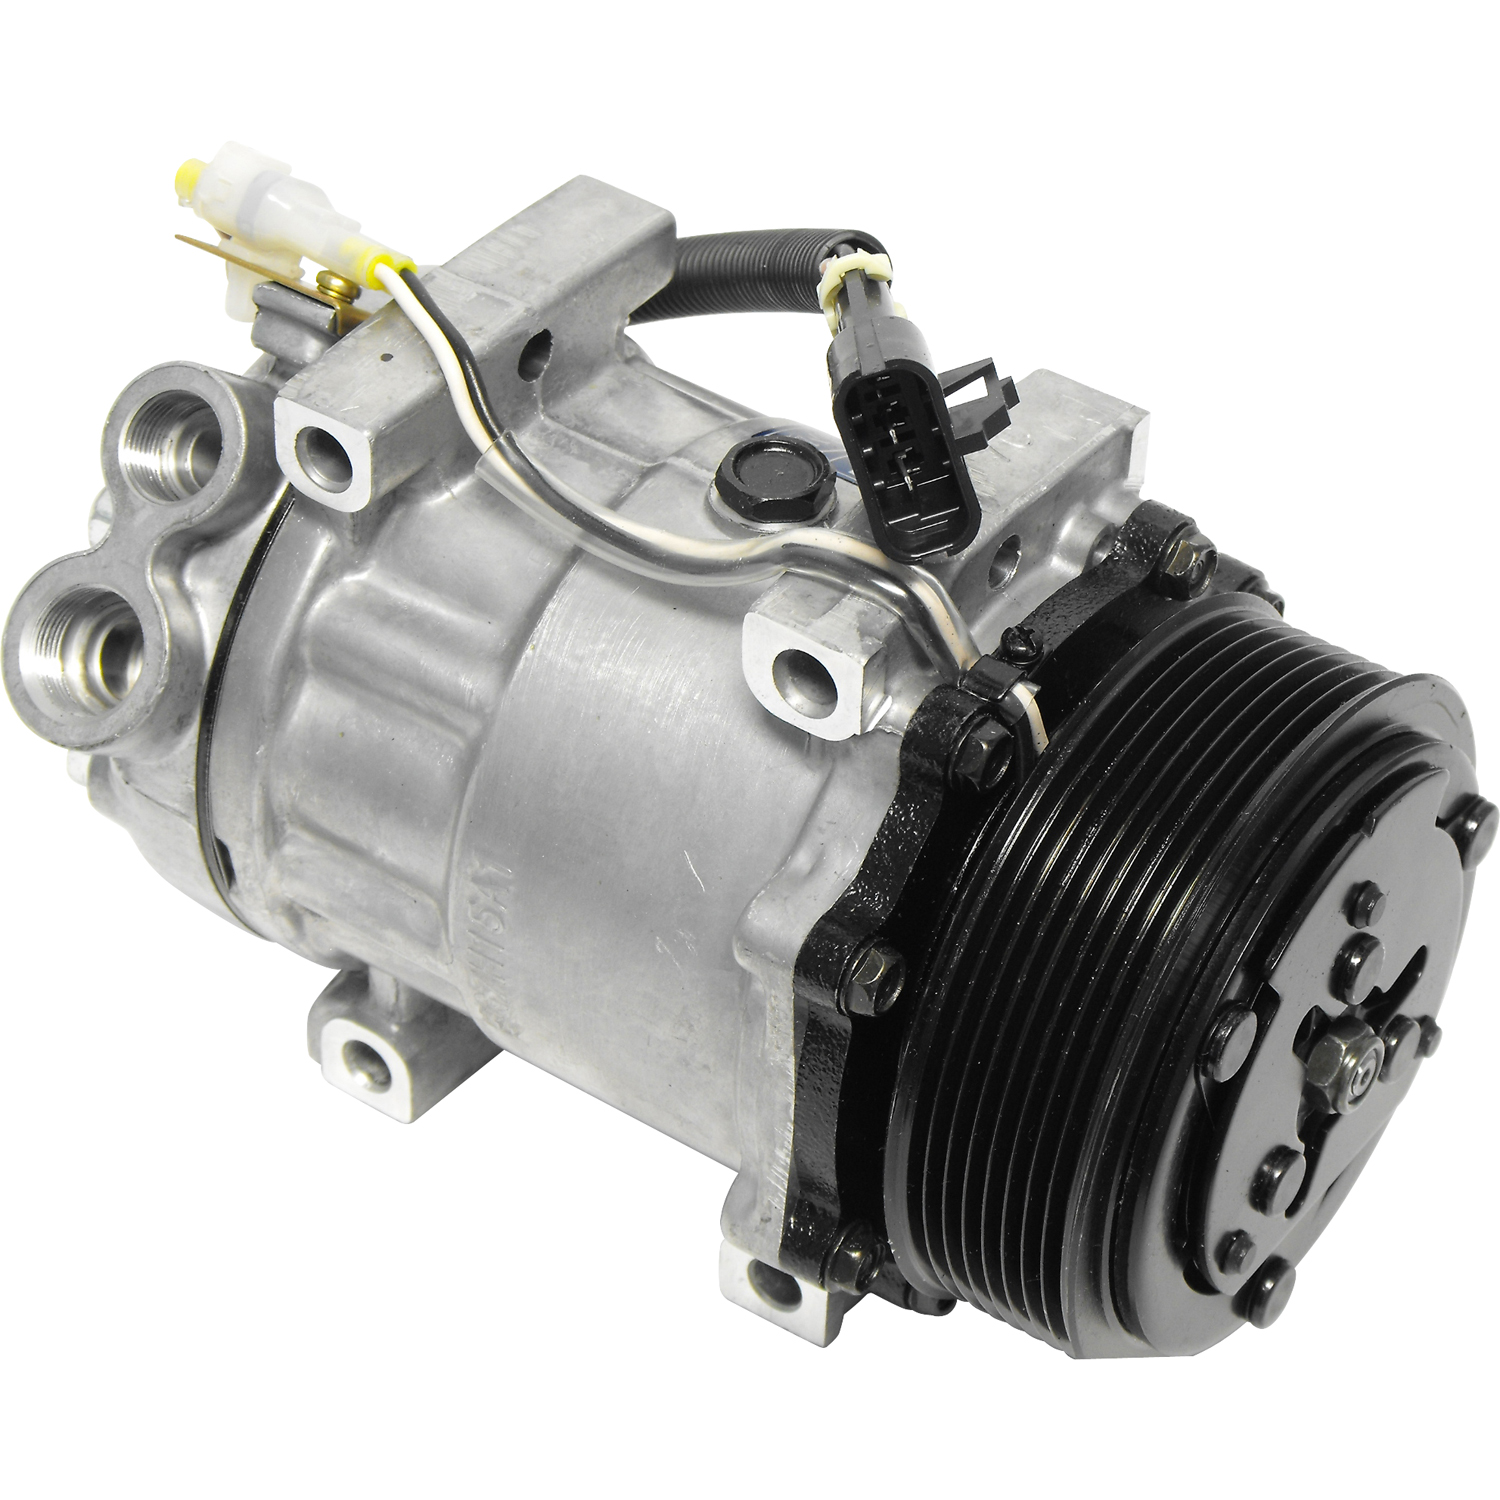 New A/C Compressor and Clutch 1010830 - A2248973000